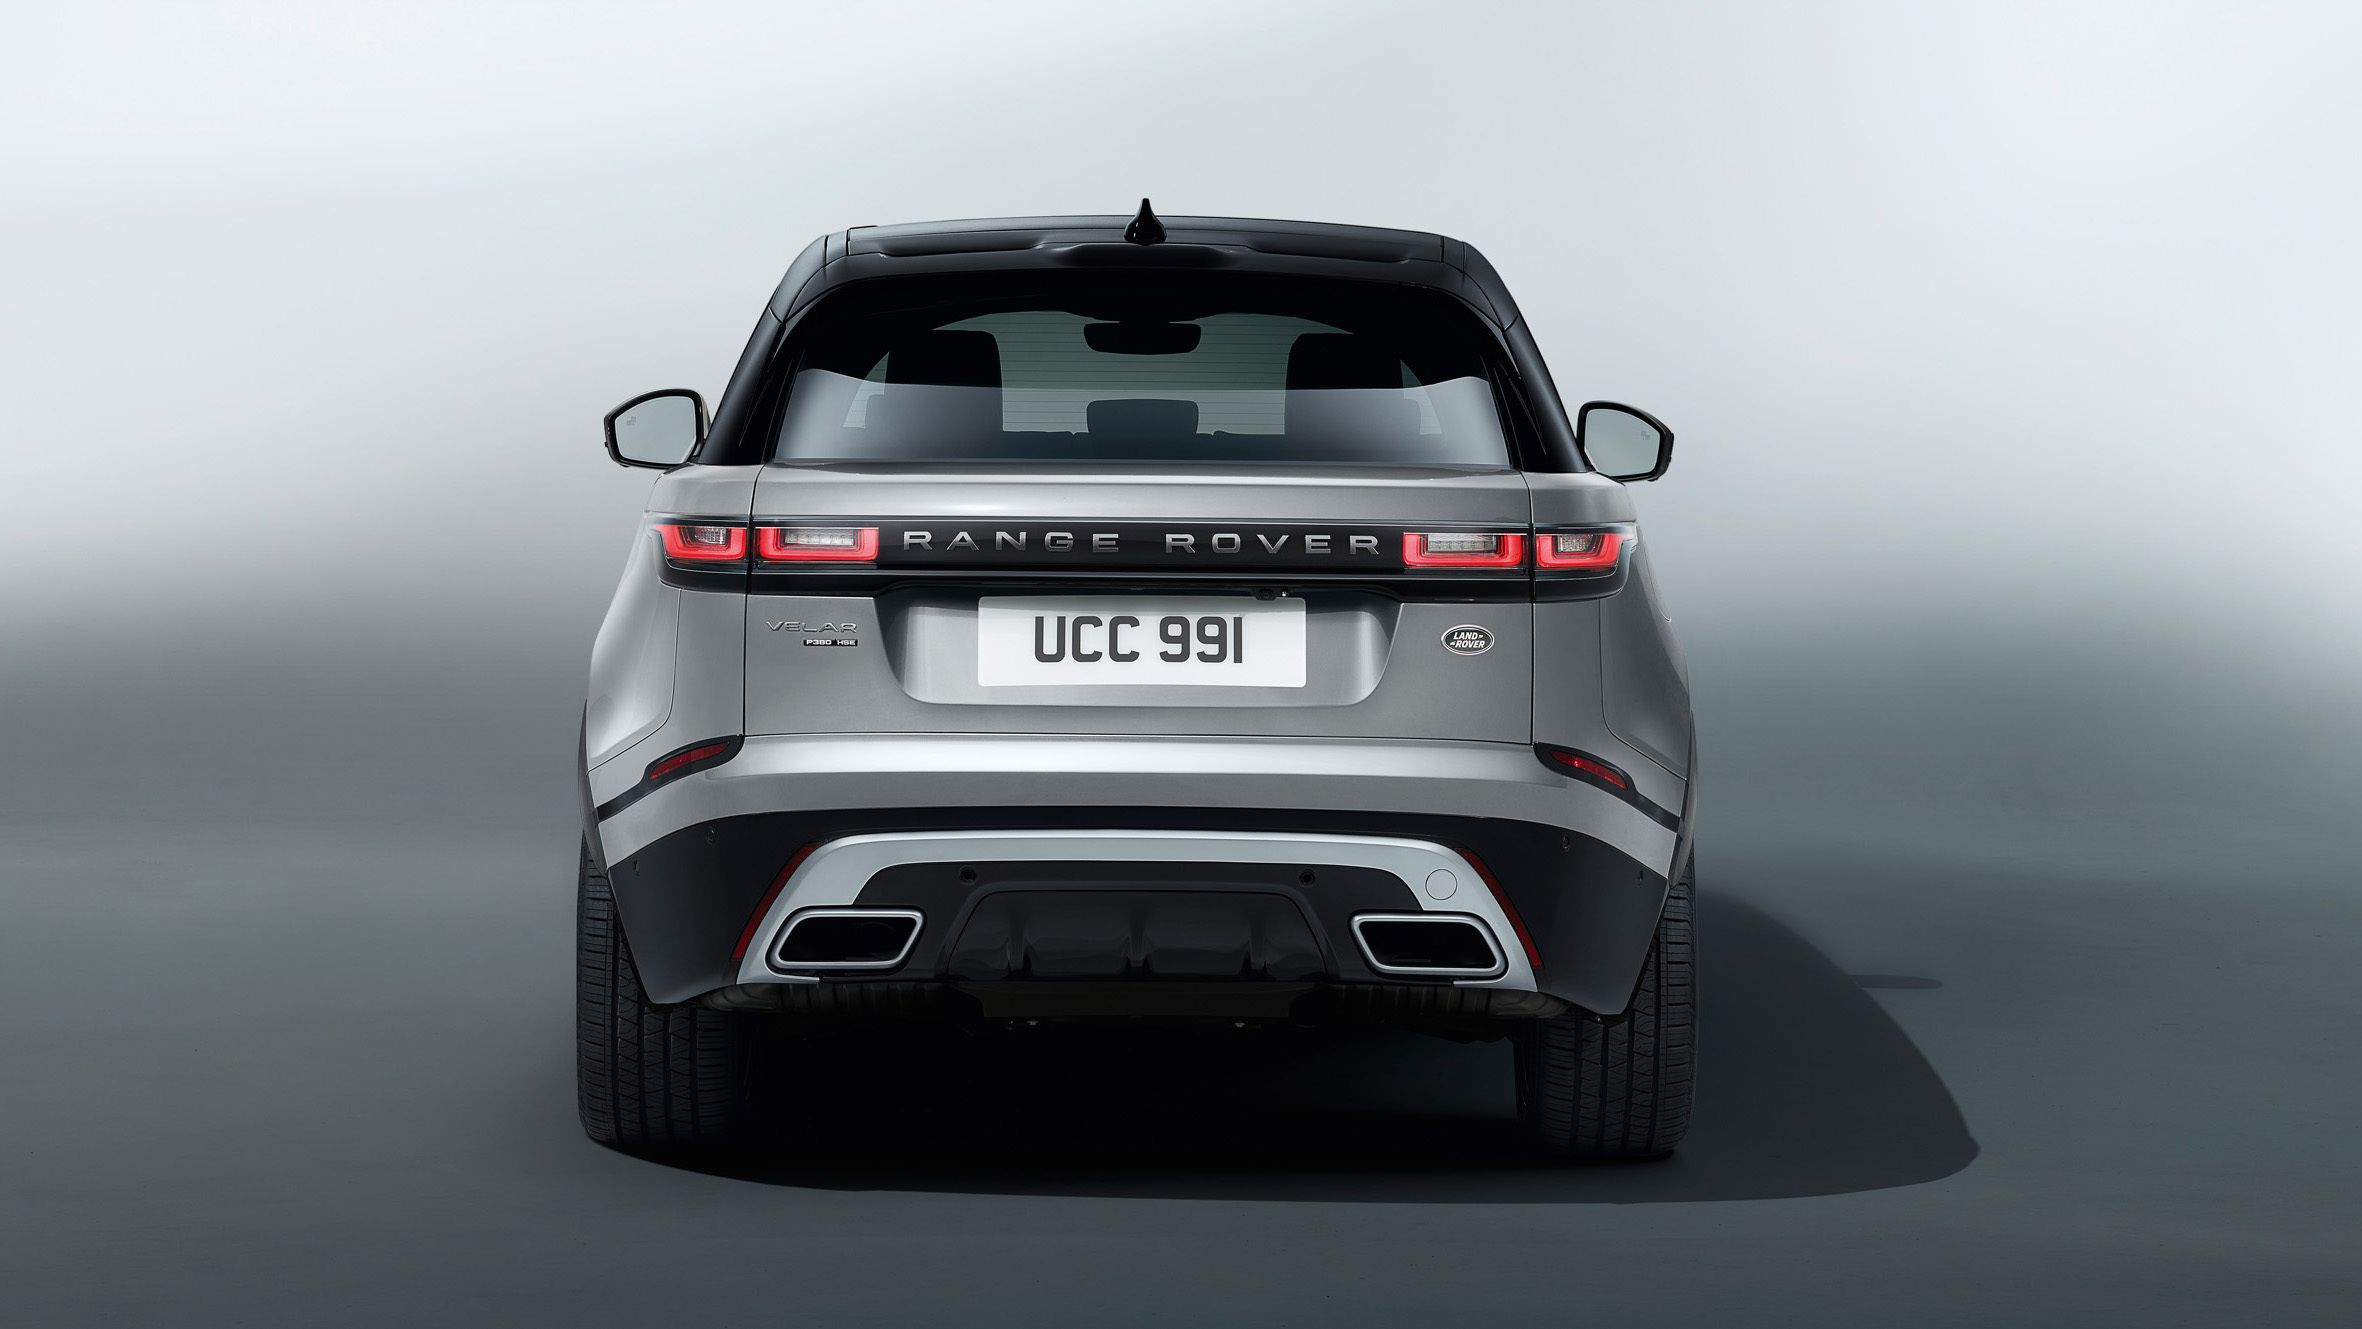 The Range Rover Velar Is A High End Spin On Jaguar F Pace Underpinnings Range Rover Sport Price Range Rover Land Rover